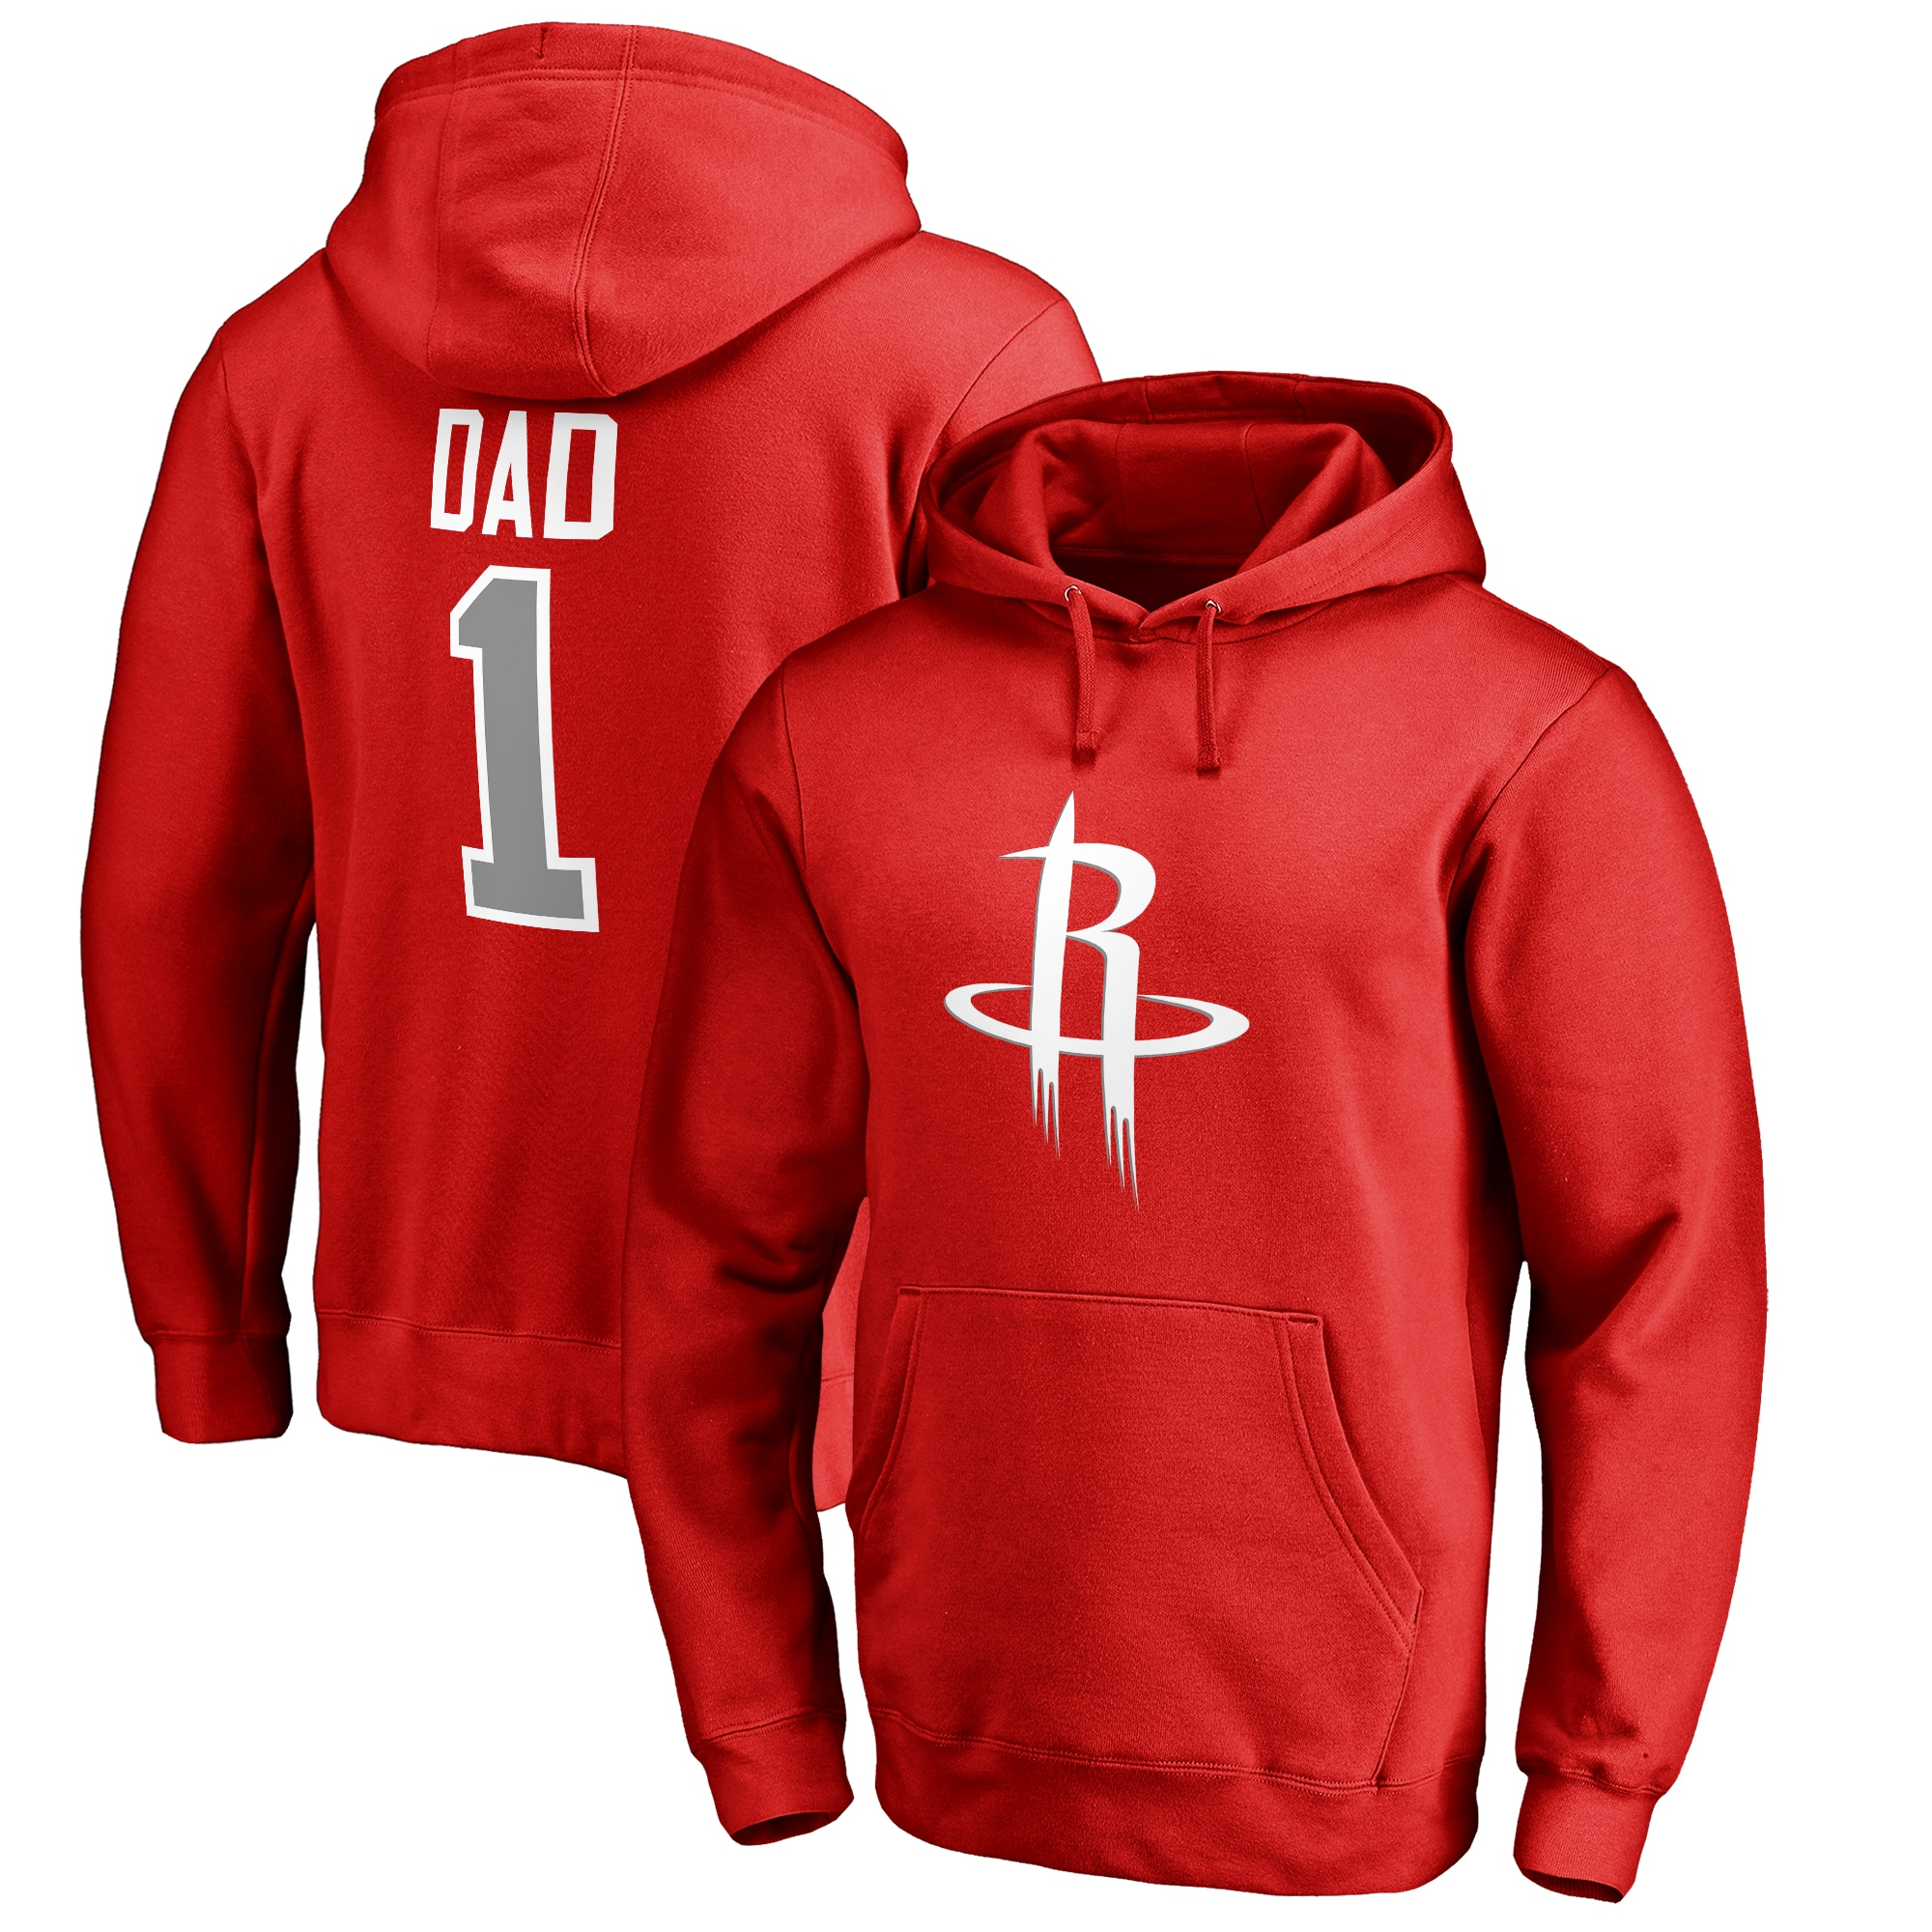 Houston Rockets #1 Dad Pullover Hoodie - Red